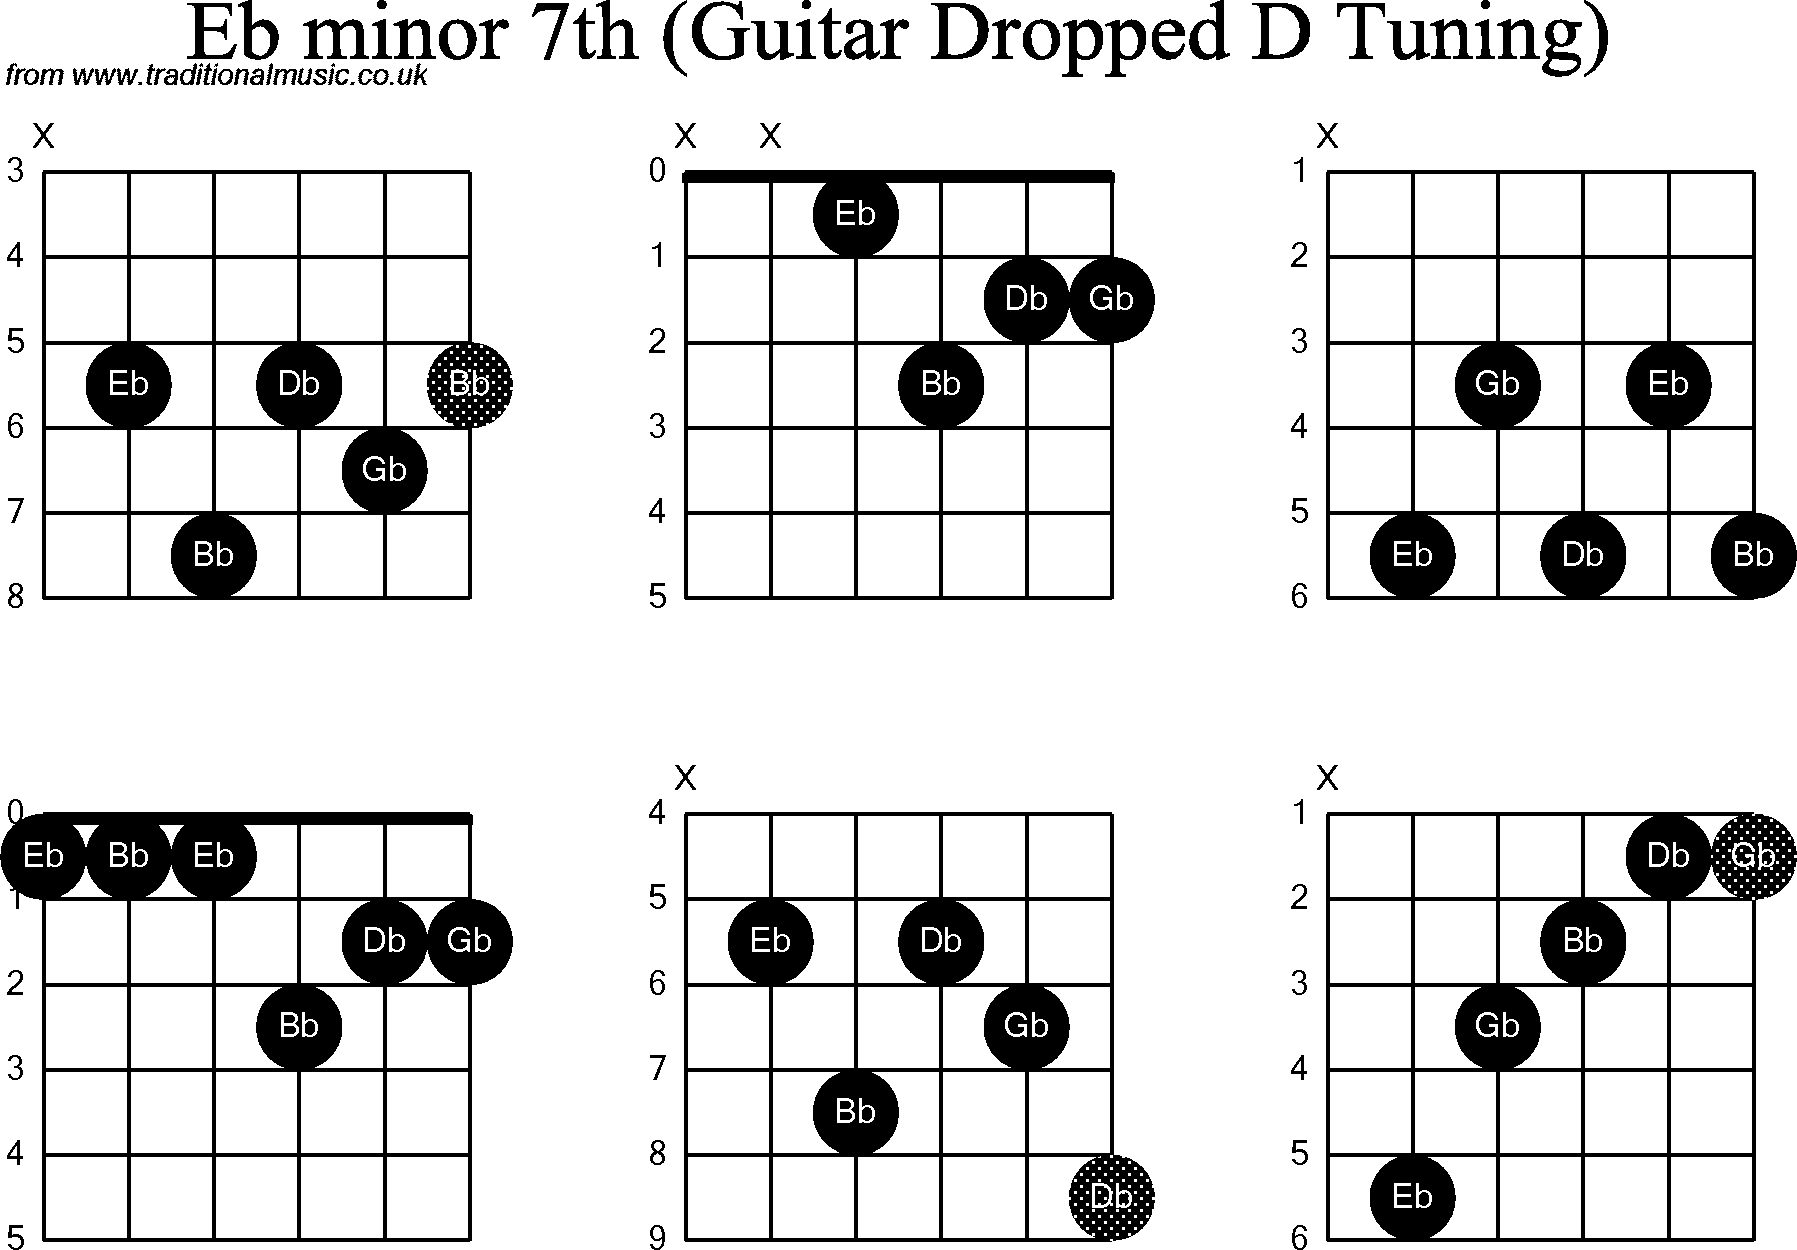 Chord diagrams for dropped d guitardadgbe eb minor7th chord diagrams for dropped d guitardadgbe eb minor7th hexwebz Choice Image